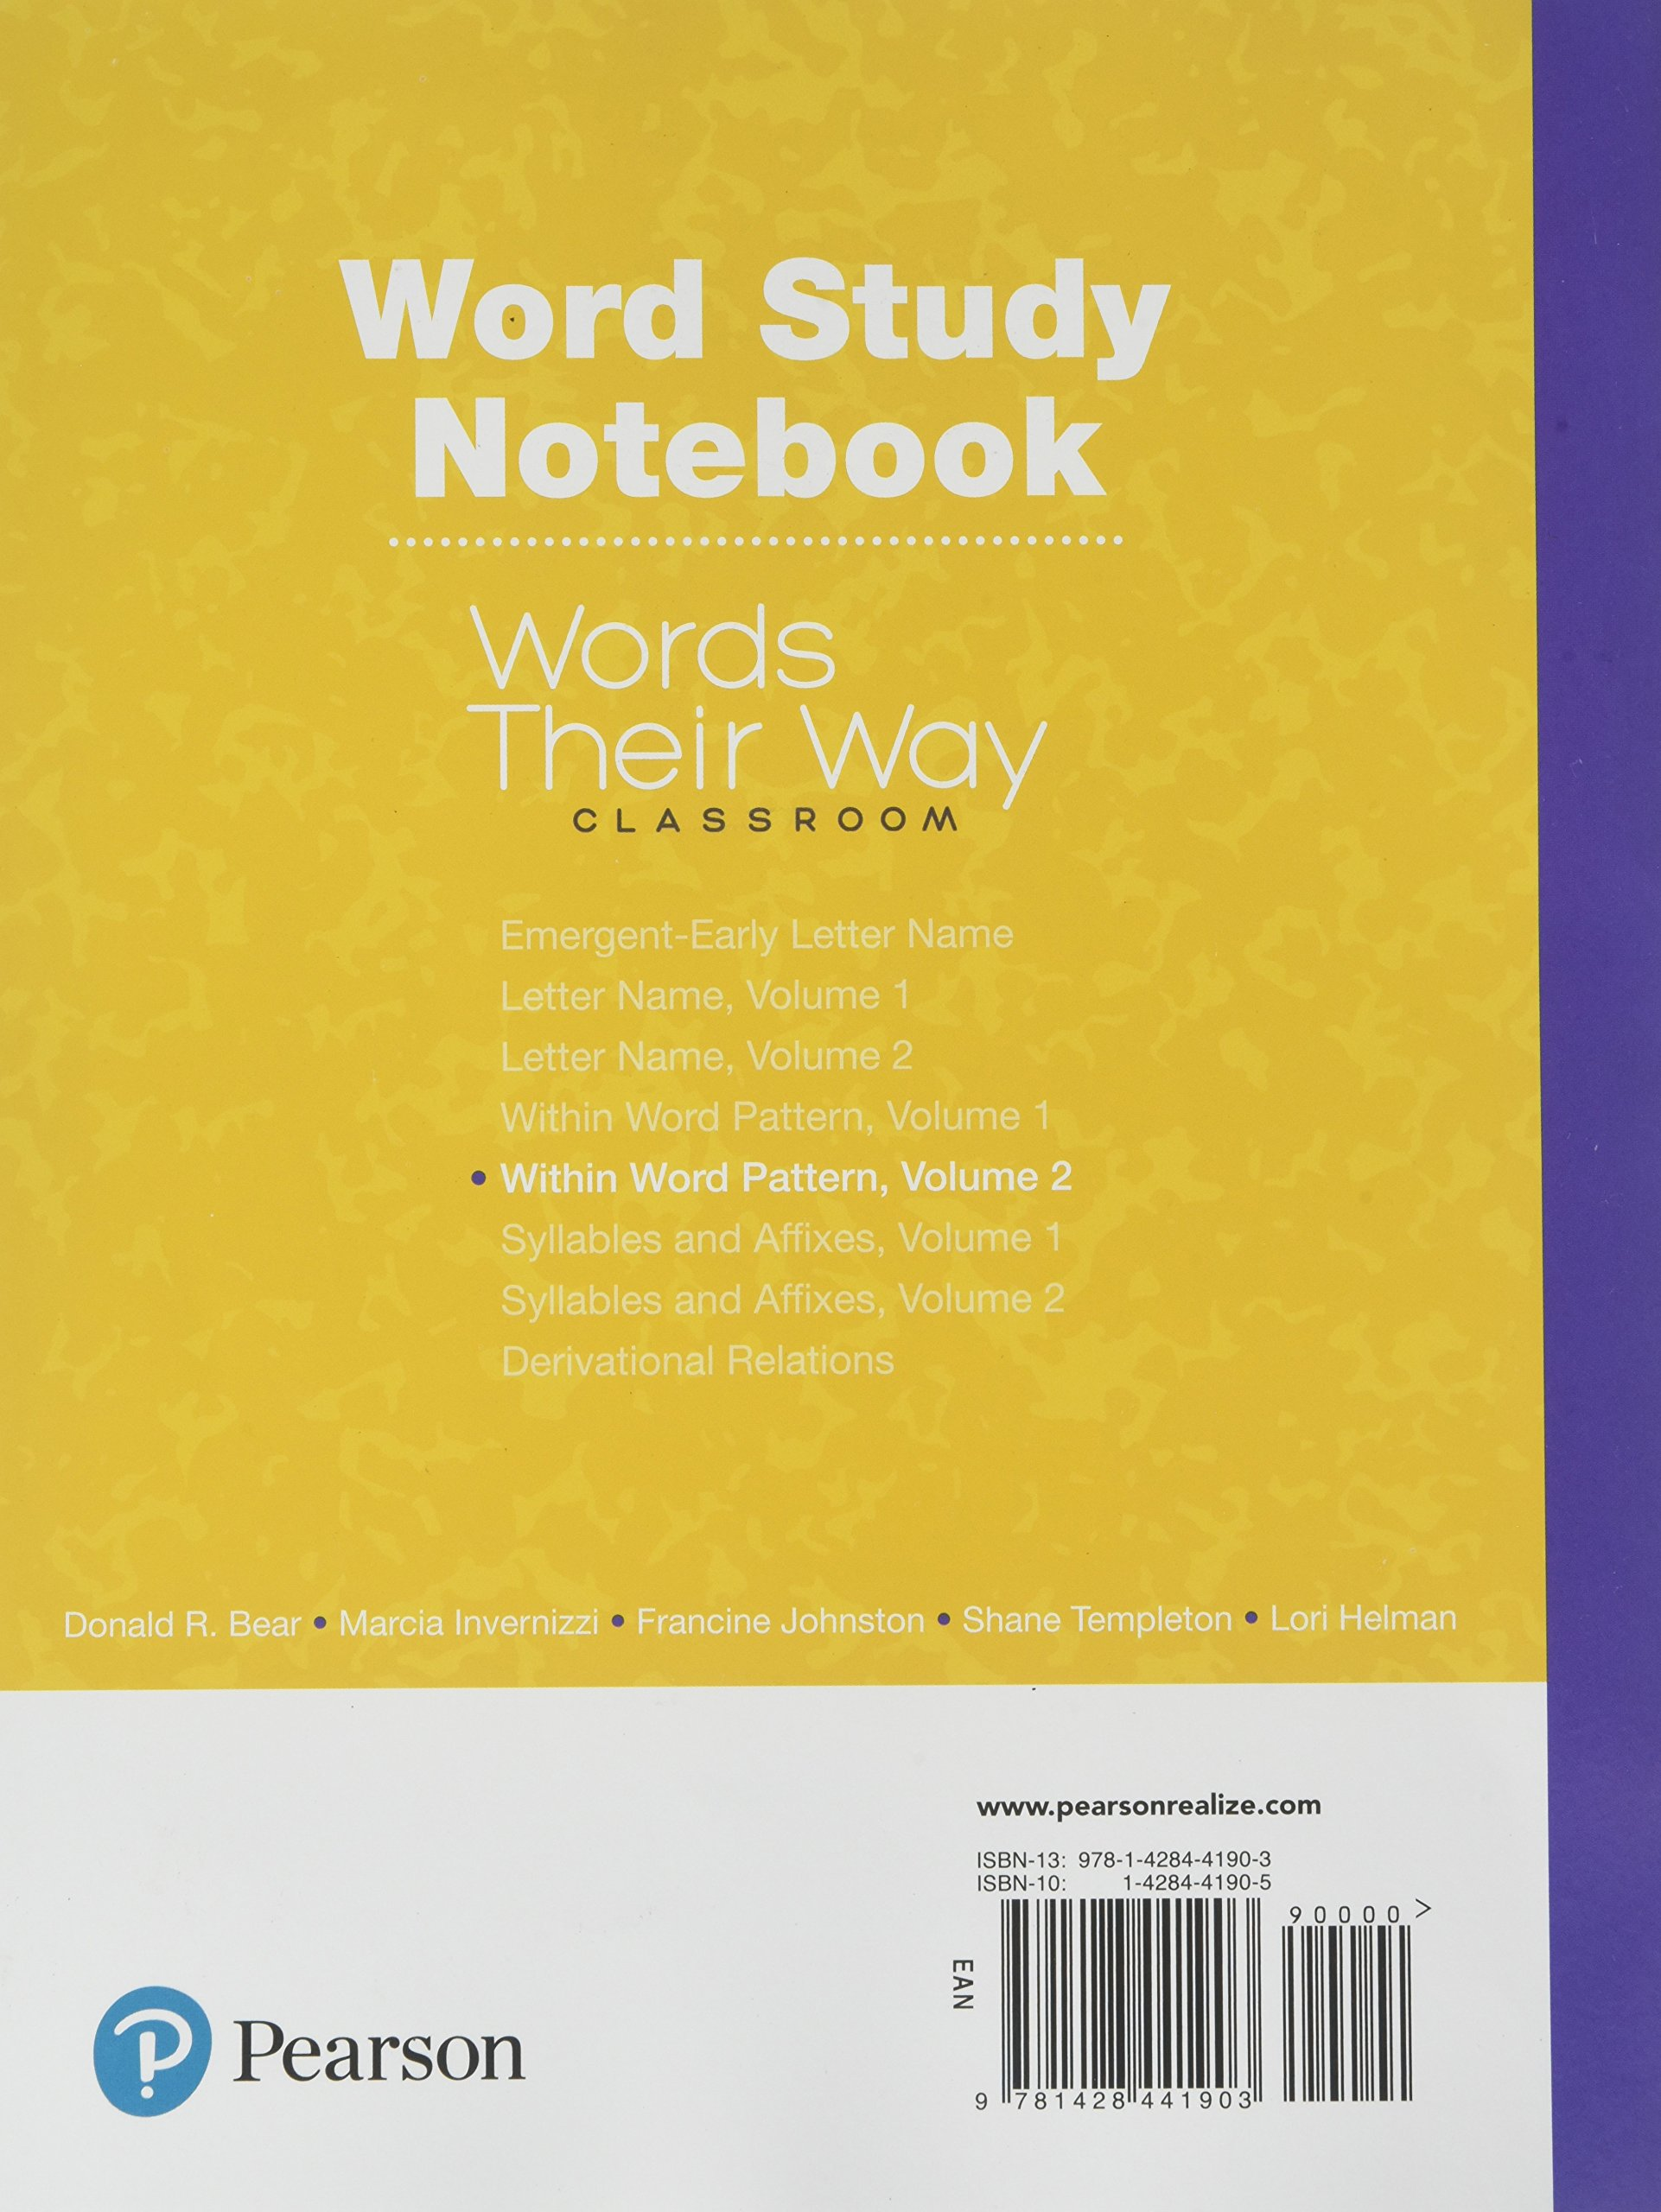 Words Their Way Classroom 2019 Within Word Patterns Volume 2: Amazon